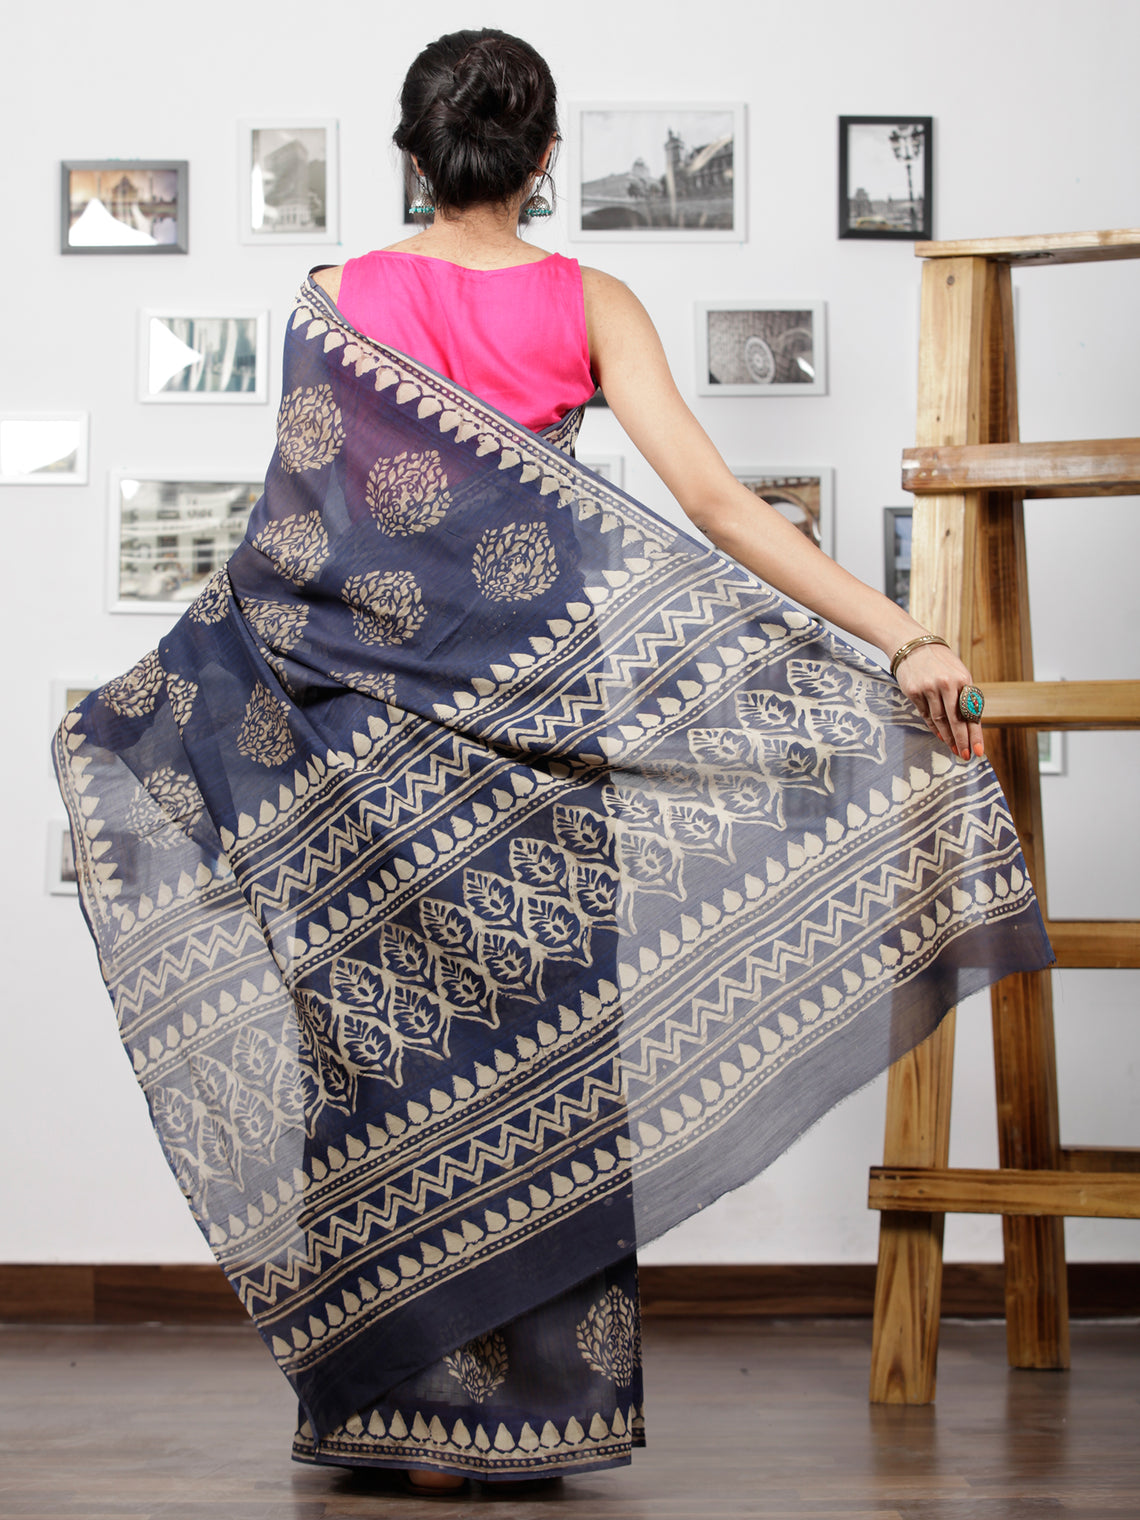 Indigo Ivory Chanderi Silk Hand Block Printed Saree With Geecha Border - S031702942